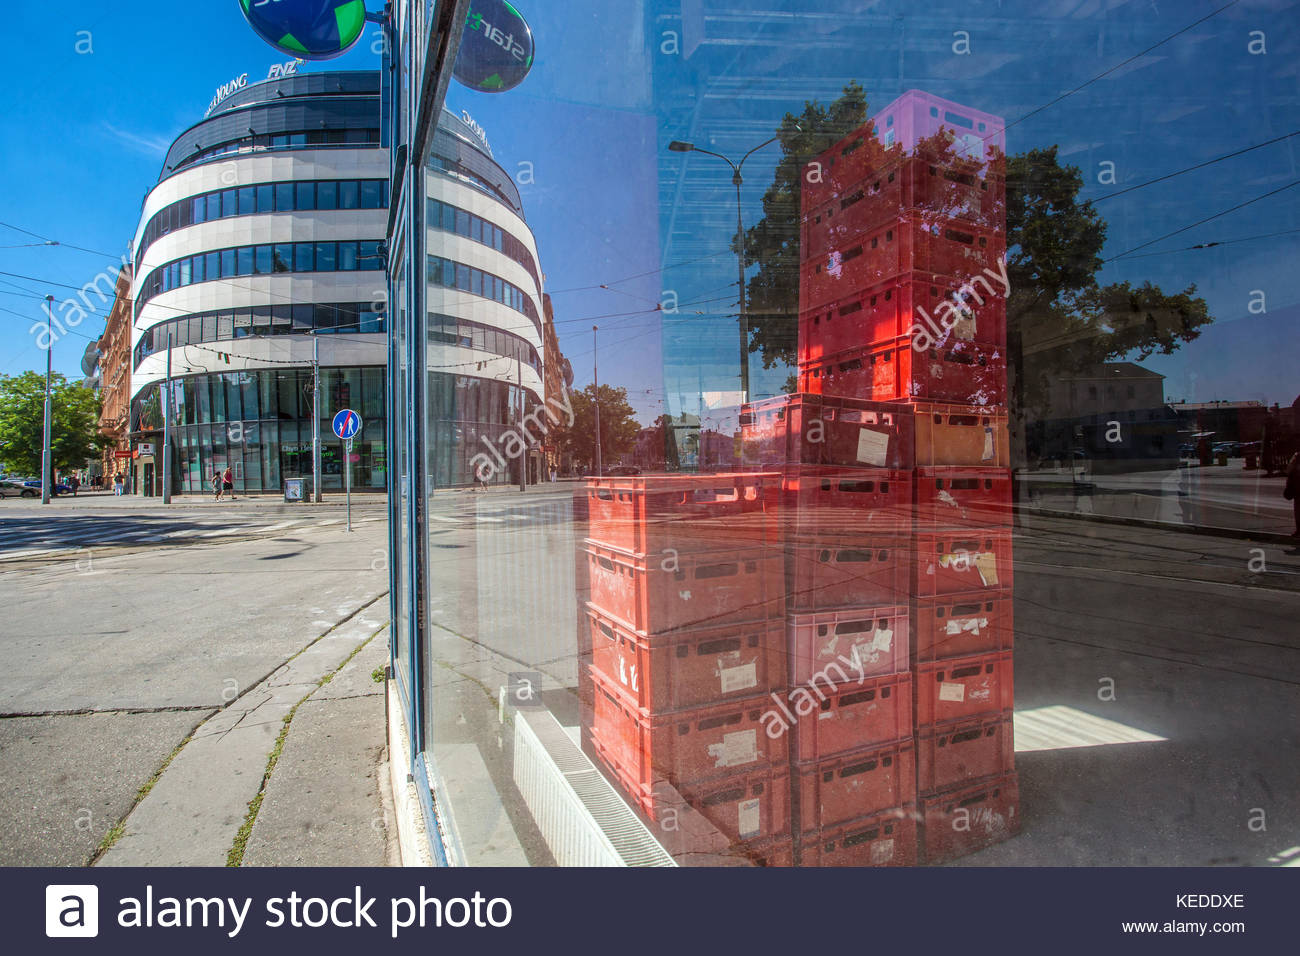 Street view on Benesova street, Modern building and red crates in empty store, Brno, Czech Republic - Stock Image